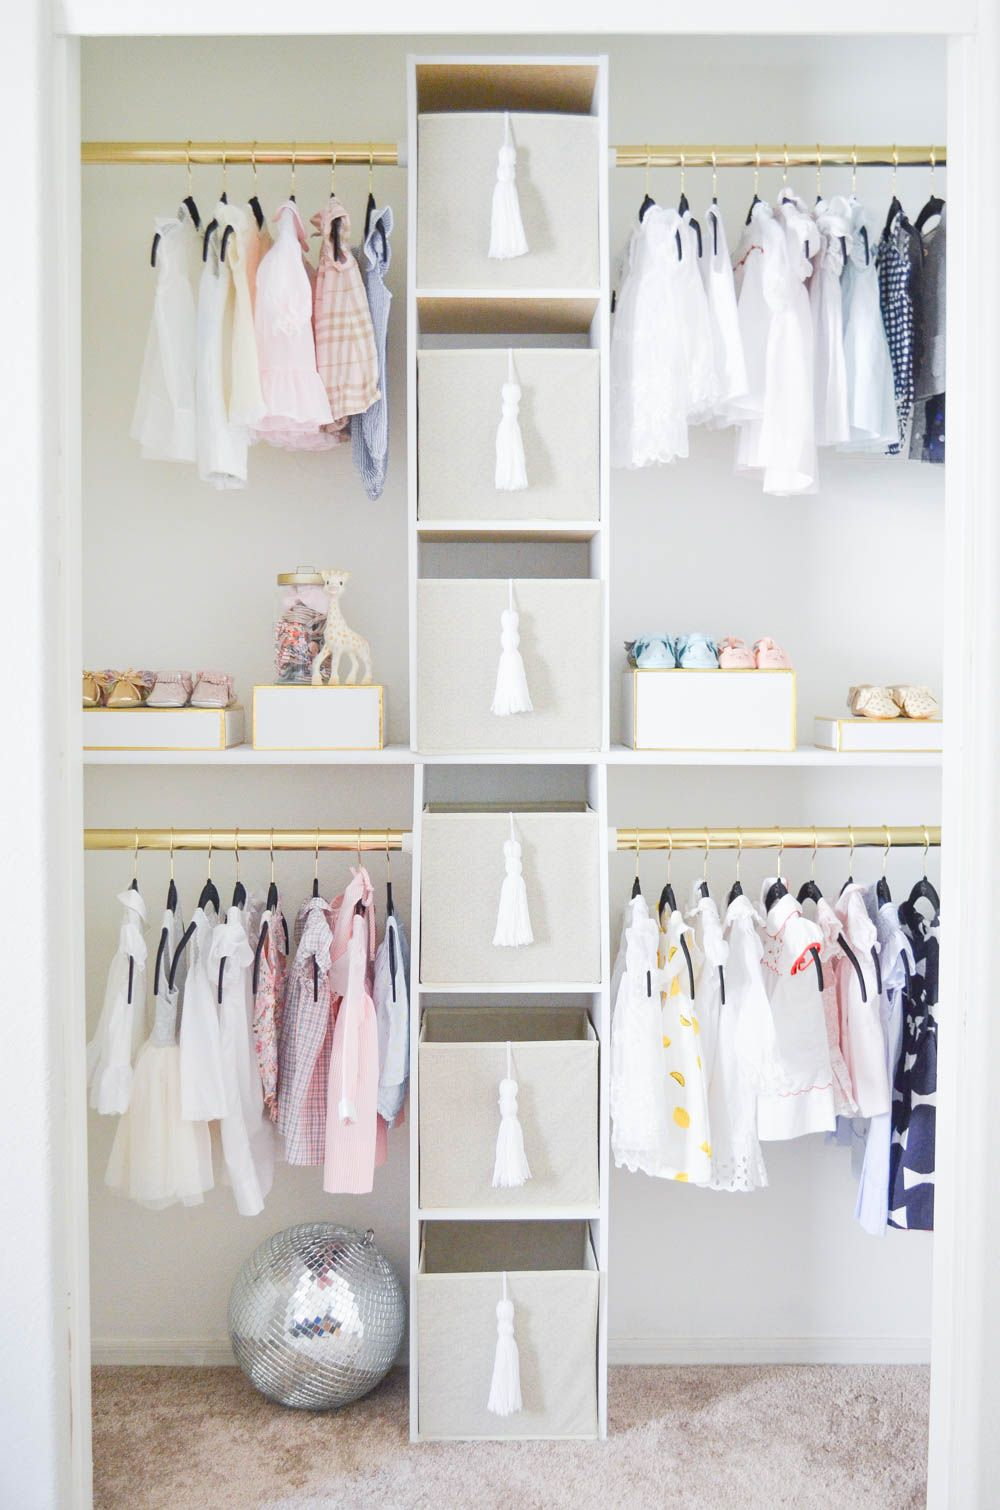 Attractive Youu0027d Never Believe They Created This Nursery Closet On A Budget! Itu0027s So  Glam!